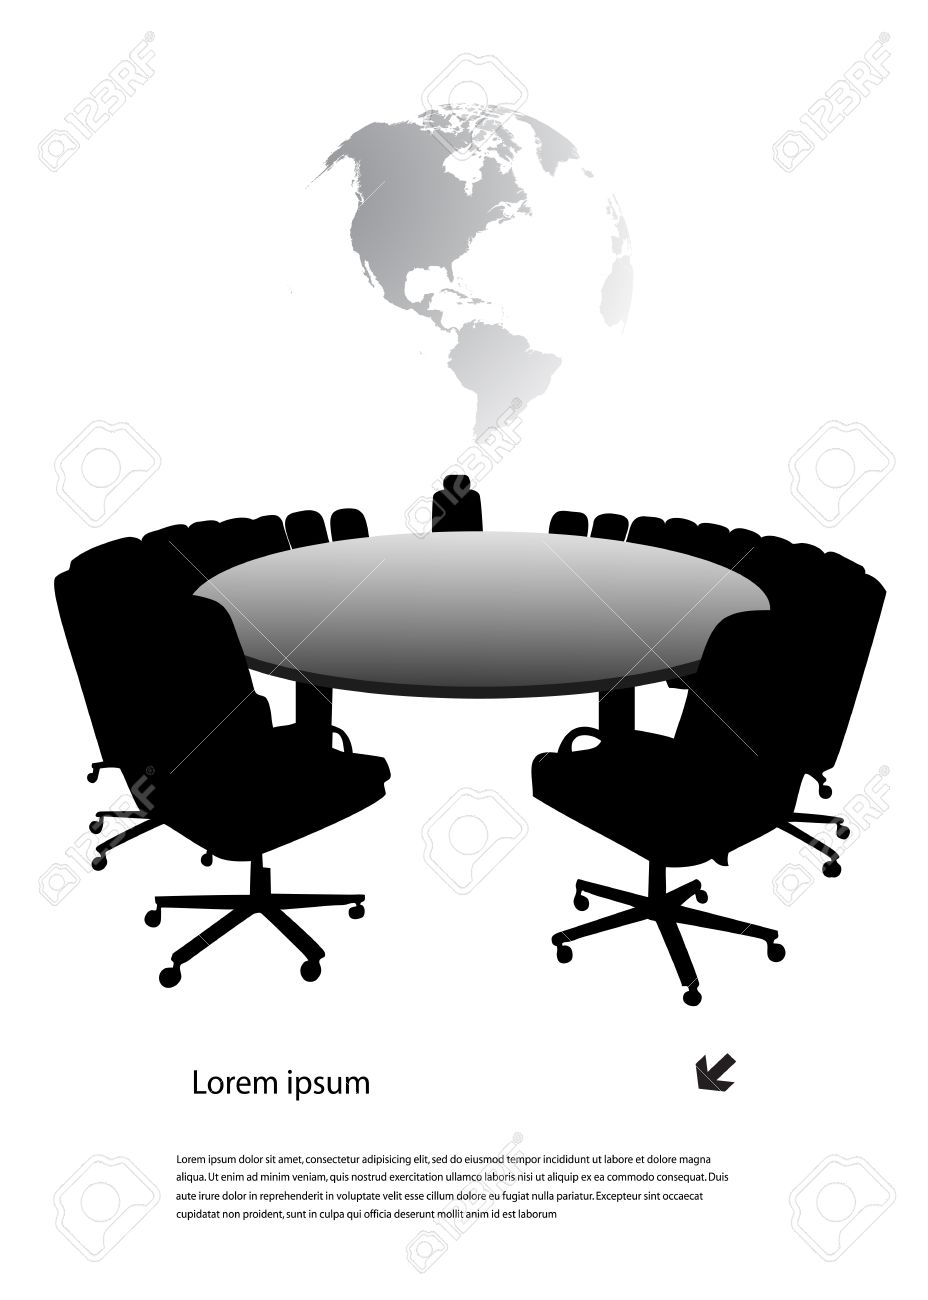 round table - 18755530